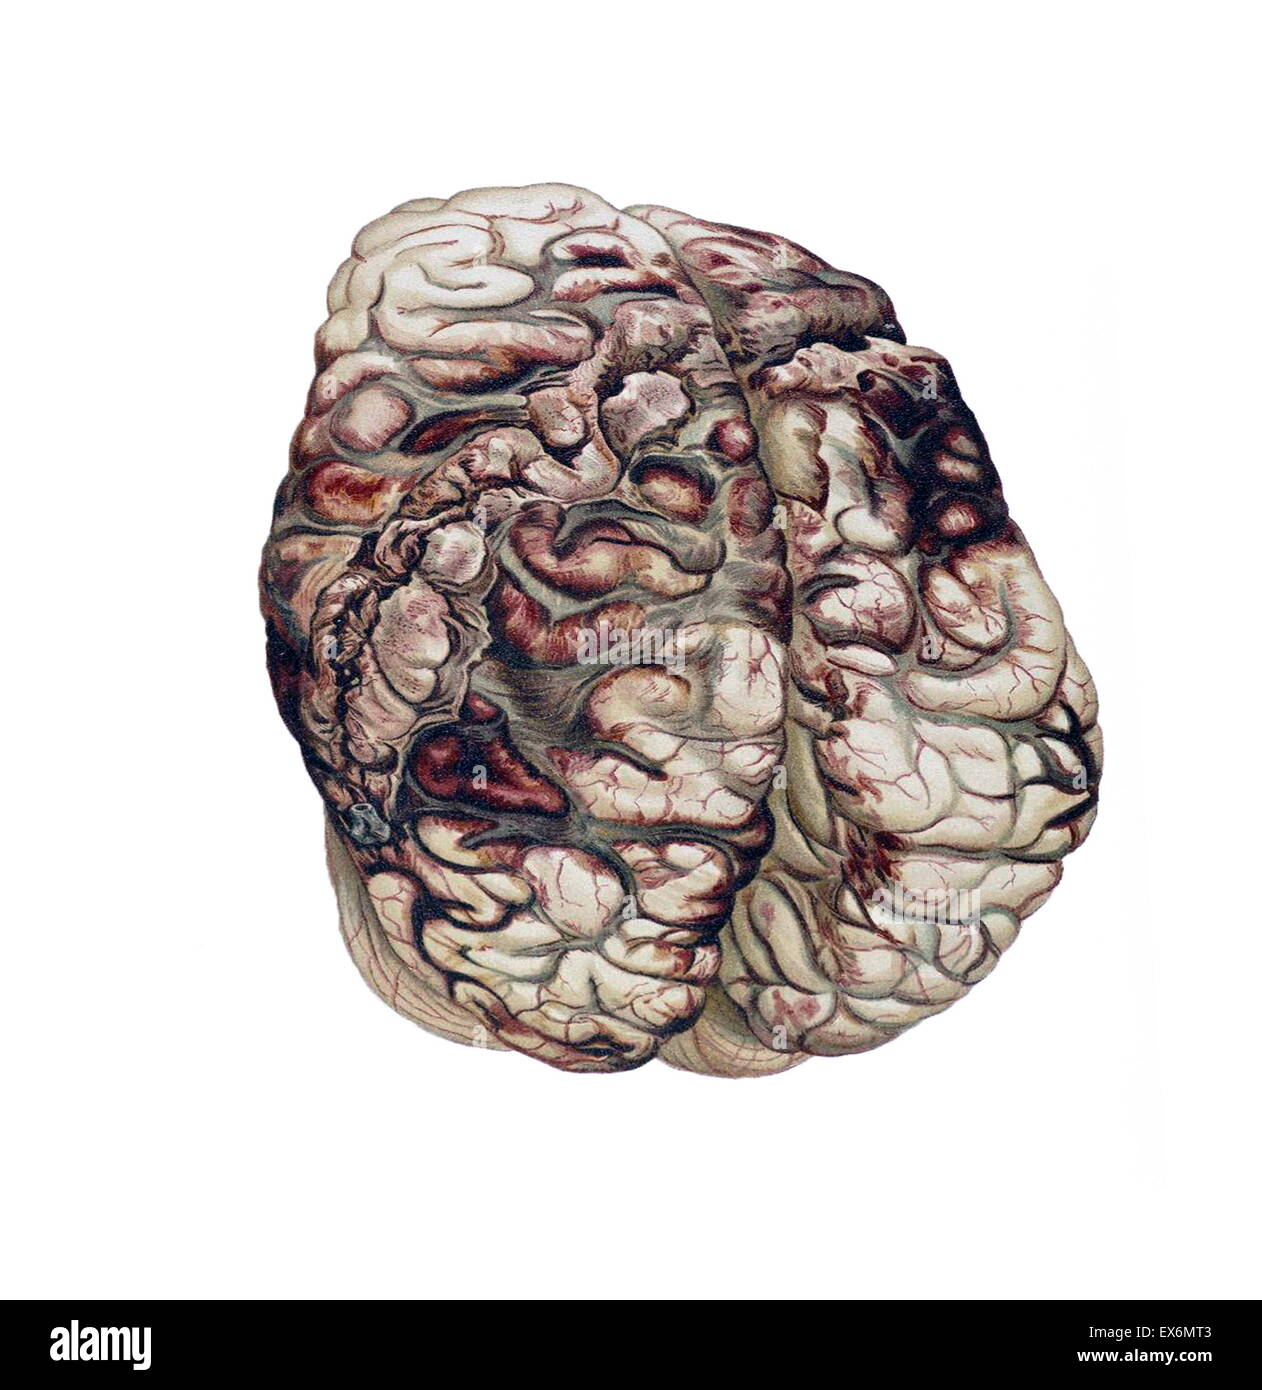 Encircling Gunshot-wound in the Brain, 1898 In atlases and manuals of legal medicine, 19th-century forensic pathologists - Stock Image